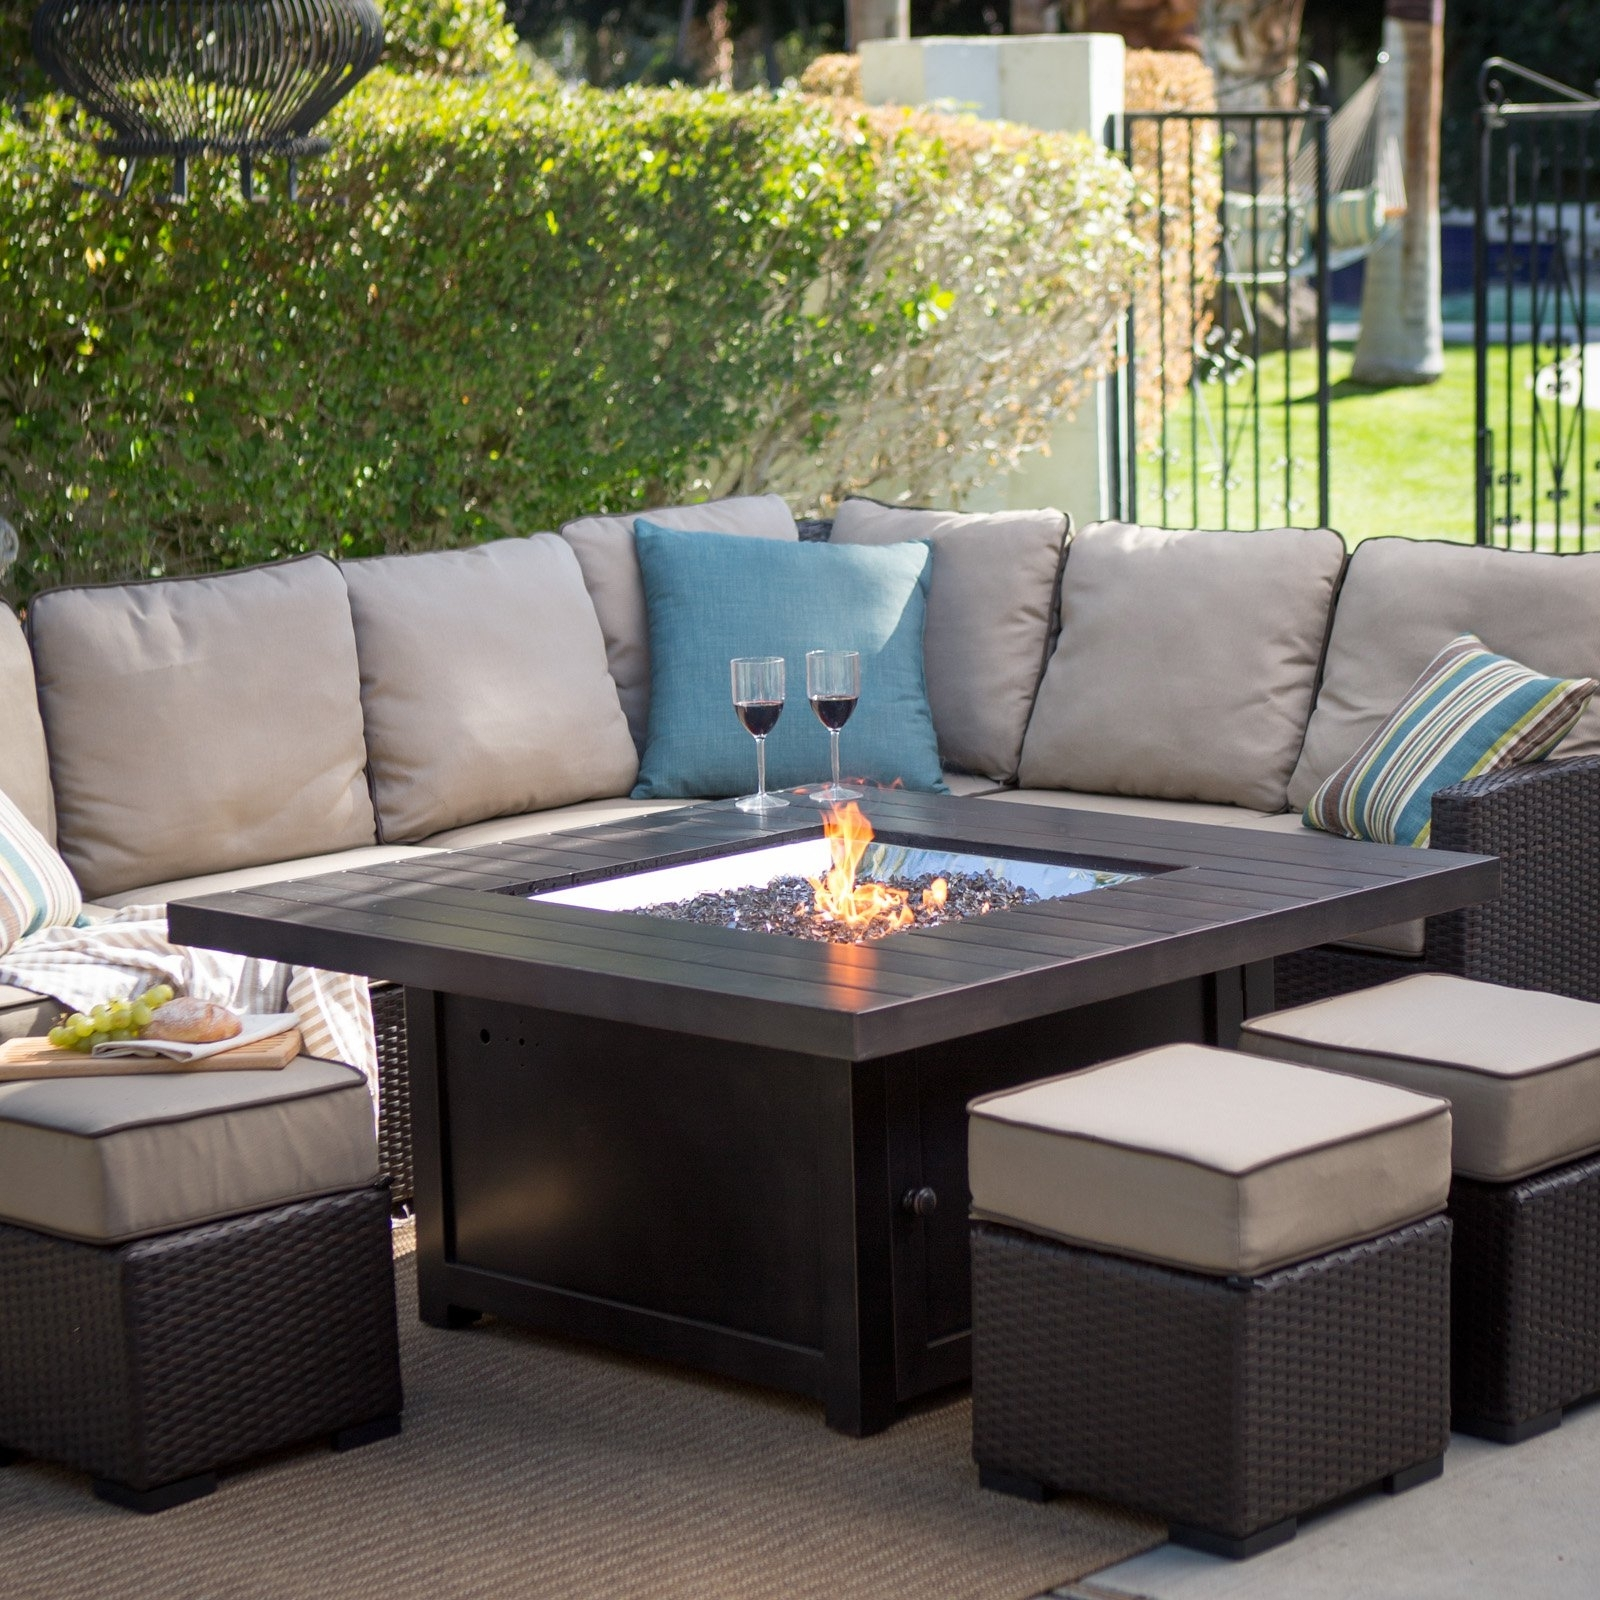 Preferred Furniture: High Quality Patio Furniture Columbus Ohio And Fire Pit Within Conversation Patio Sets With Outdoor Sectionals (View 15 of 20)